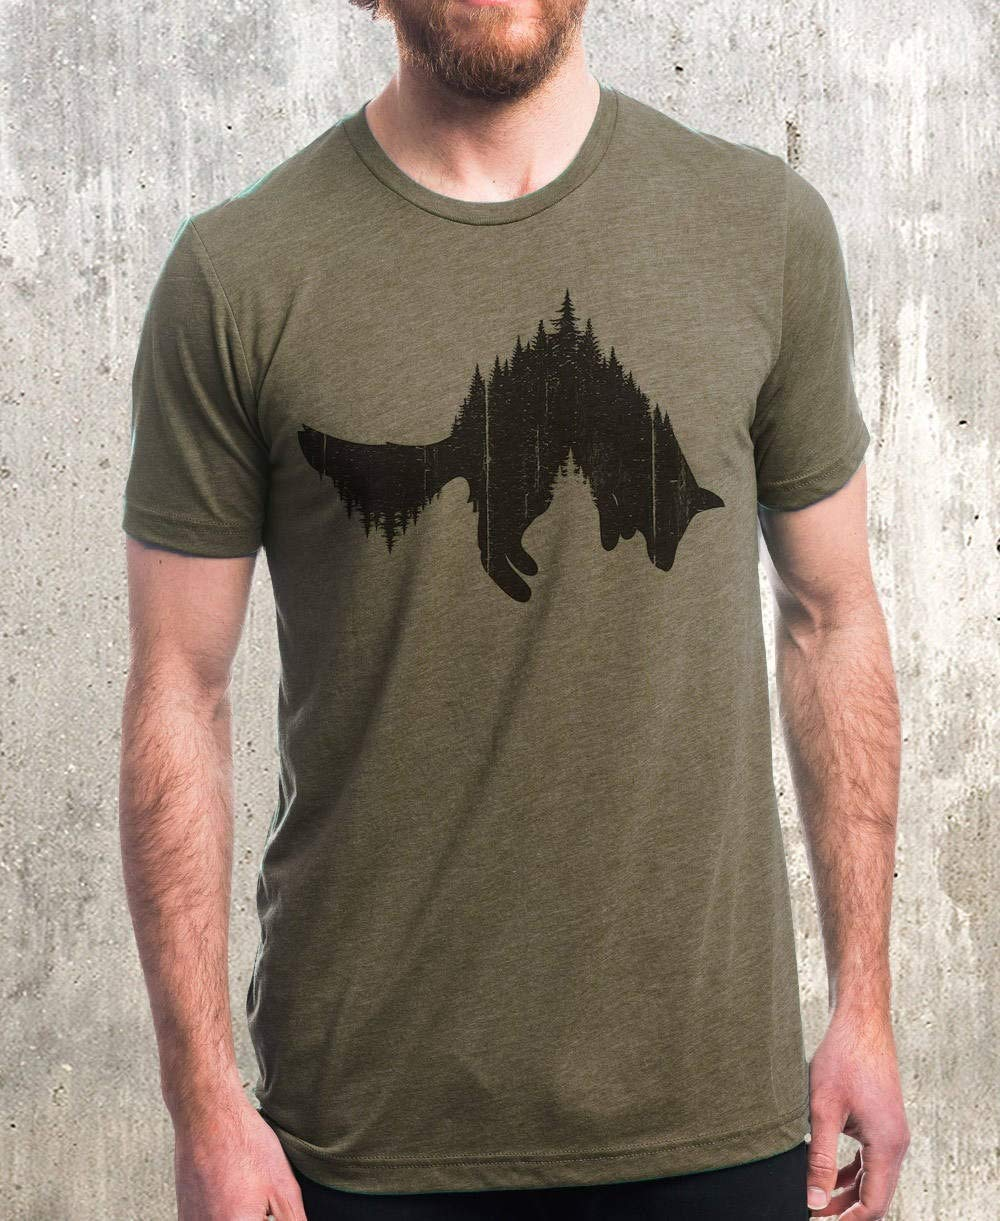 Graphic Tee - Fox and Forest - Screen Printed Nature Themed Men's/Unisex T-Shirt | Tri-Olive